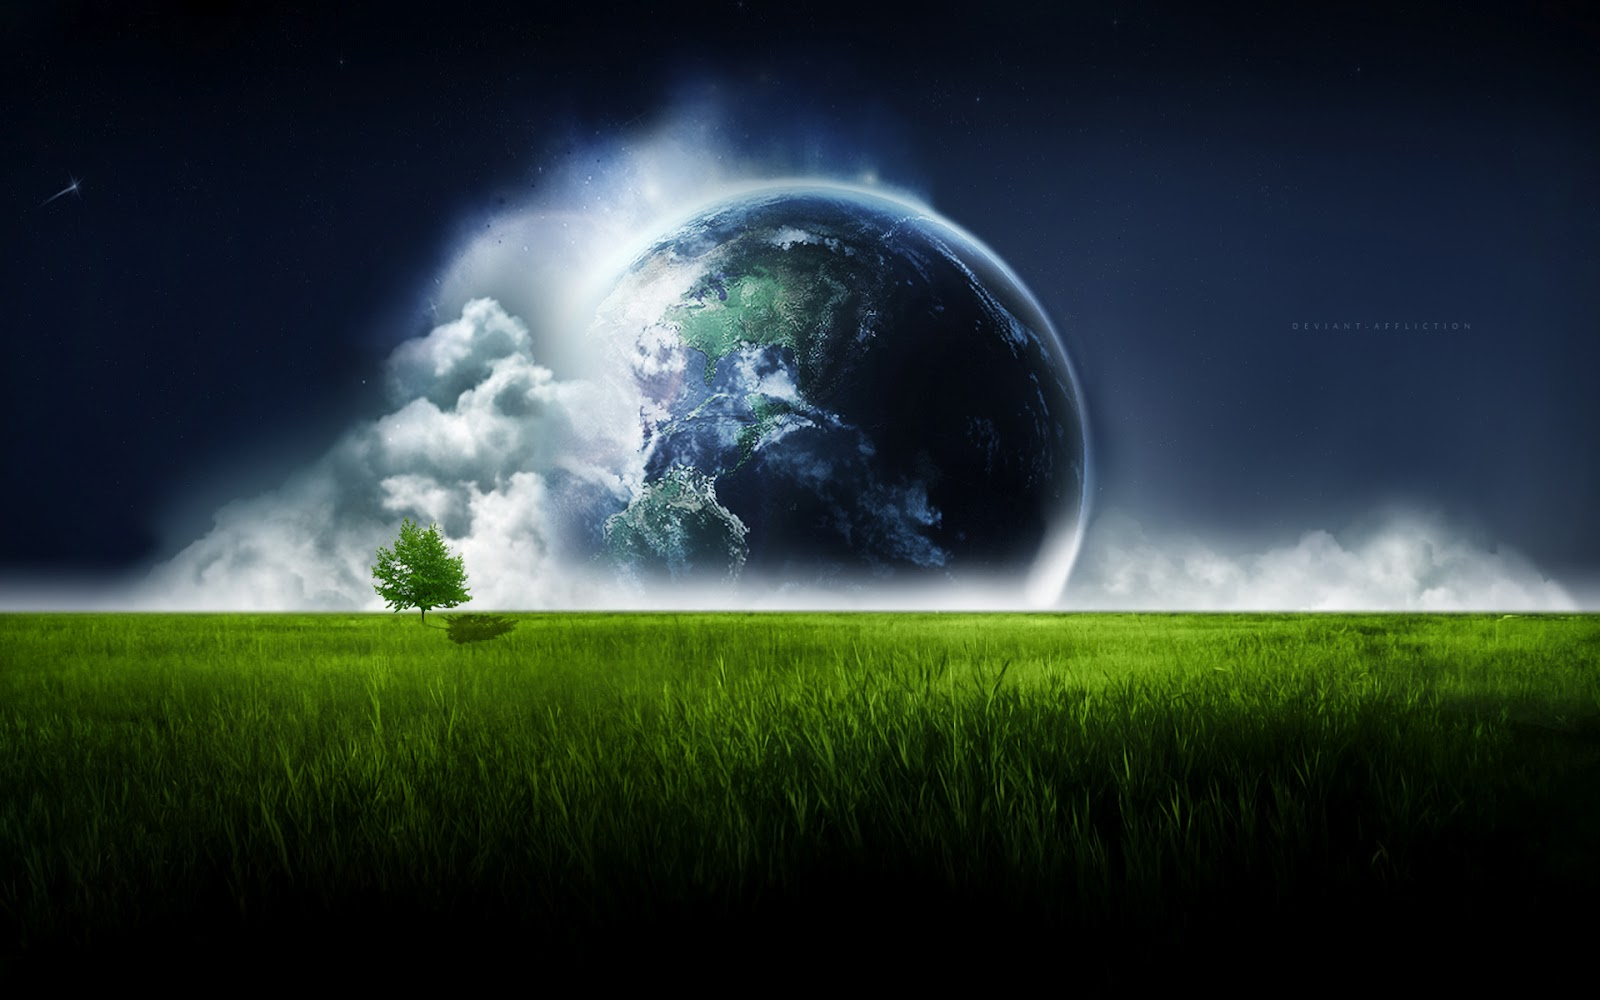 DREAMY WORLD HD WALLPAPER | Global Wallpapers